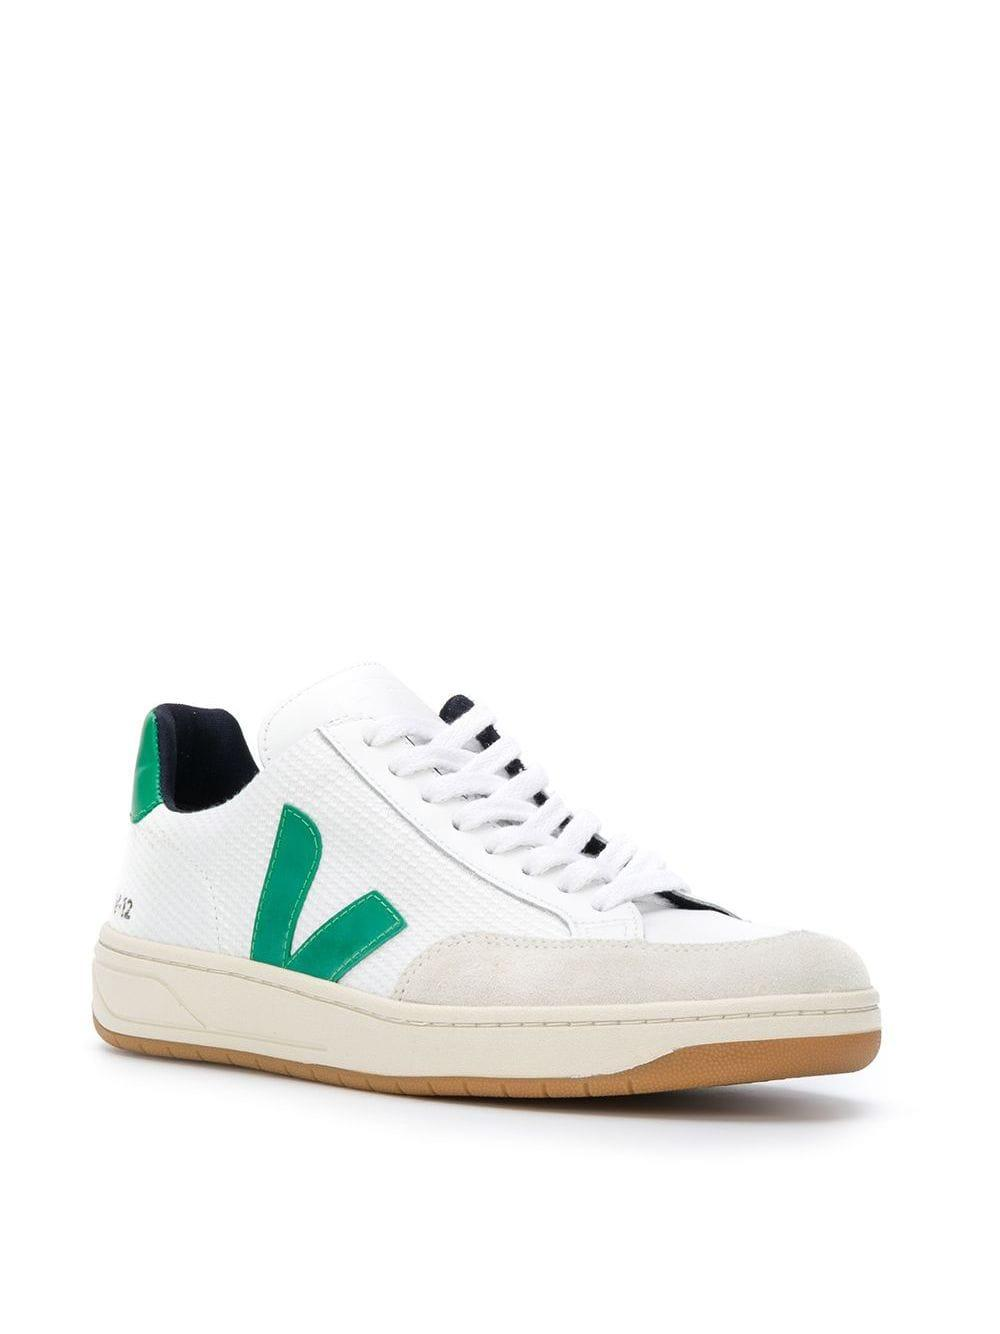 Veja Rubber Low Top Sneakers in White